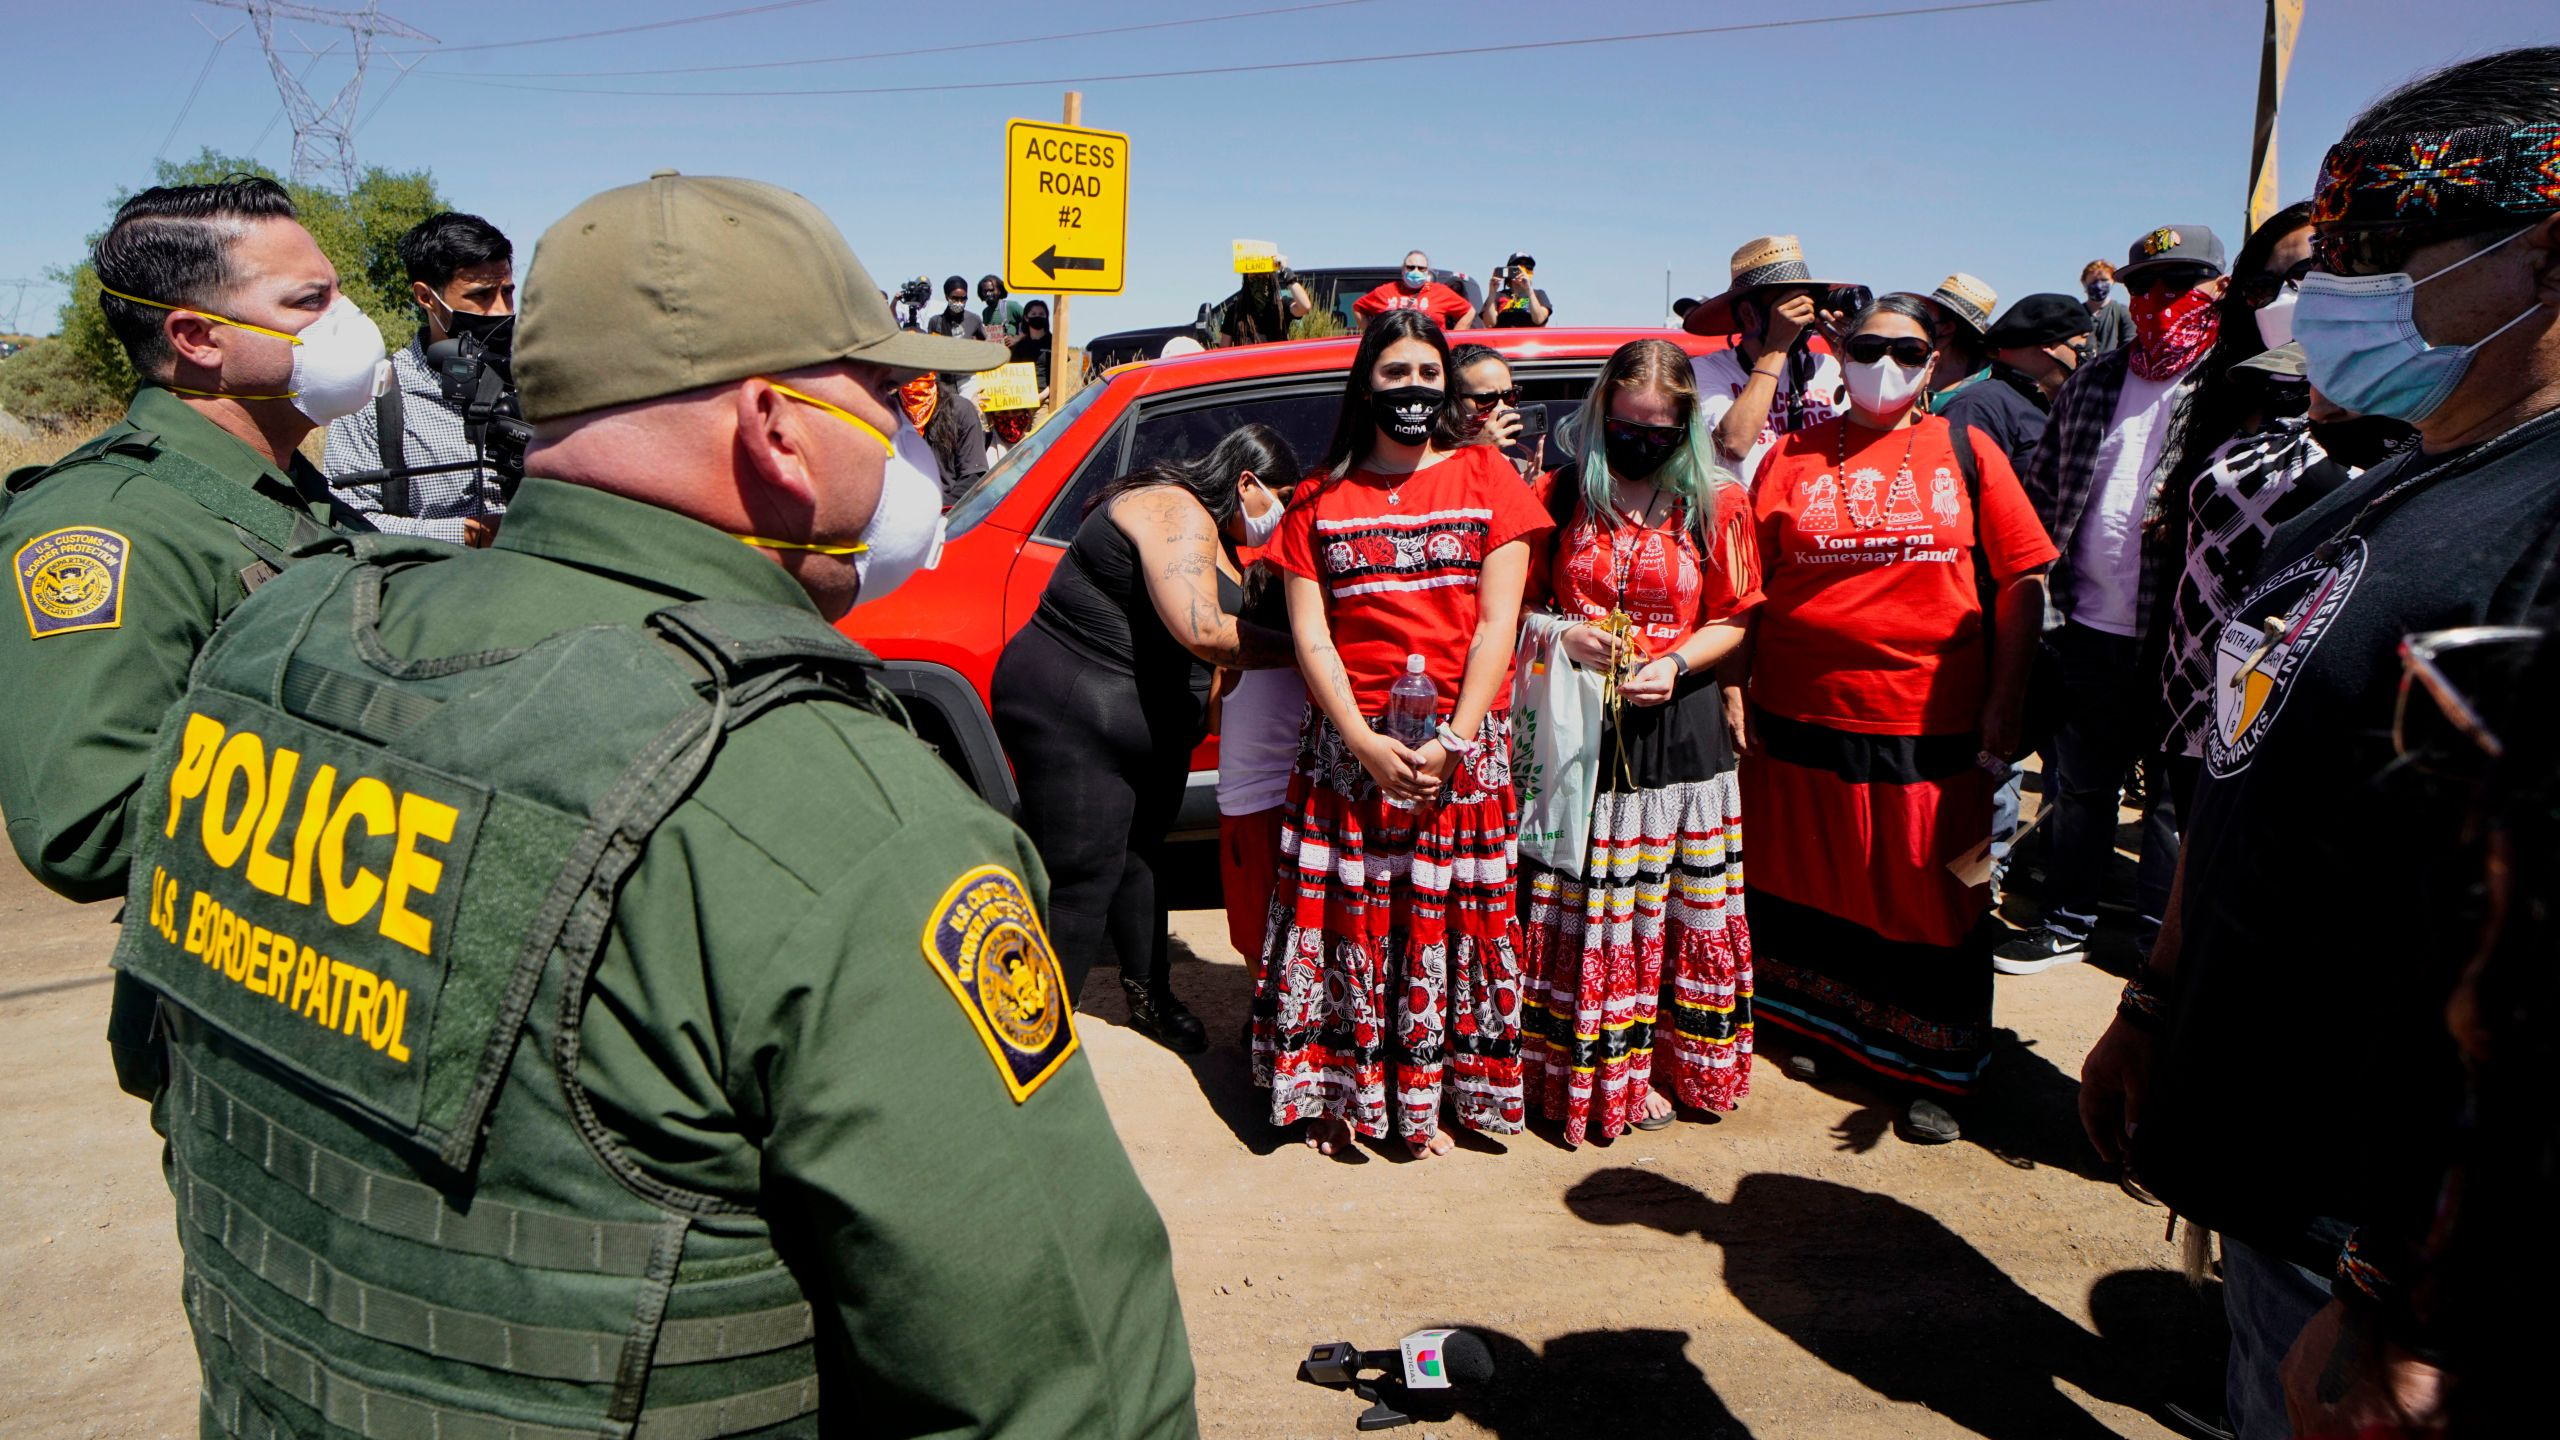 Members of the Kumeyaay band of Indians and demonstrators prepare to march to the U.S.-Mexico border to protest construction of a new wall being constructed on their ancestral grounds on July 1, 2020 in Boulevard, California. (SANDY HUFFAKER/AFP via Getty Images)